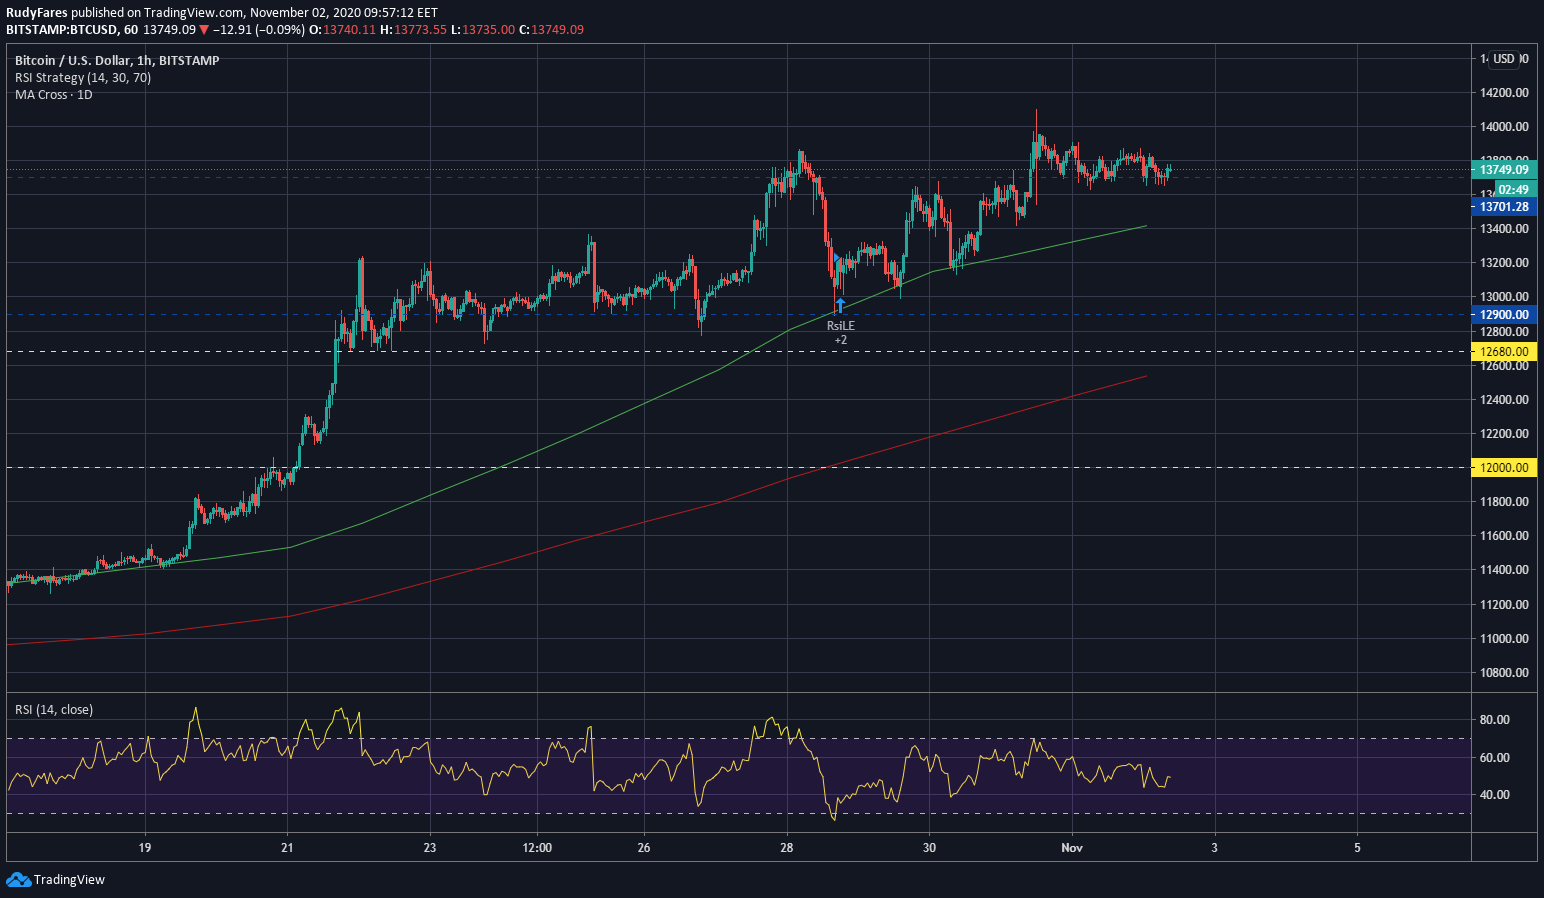 BTC/USD price 1H chart, showing the uptrend continuation